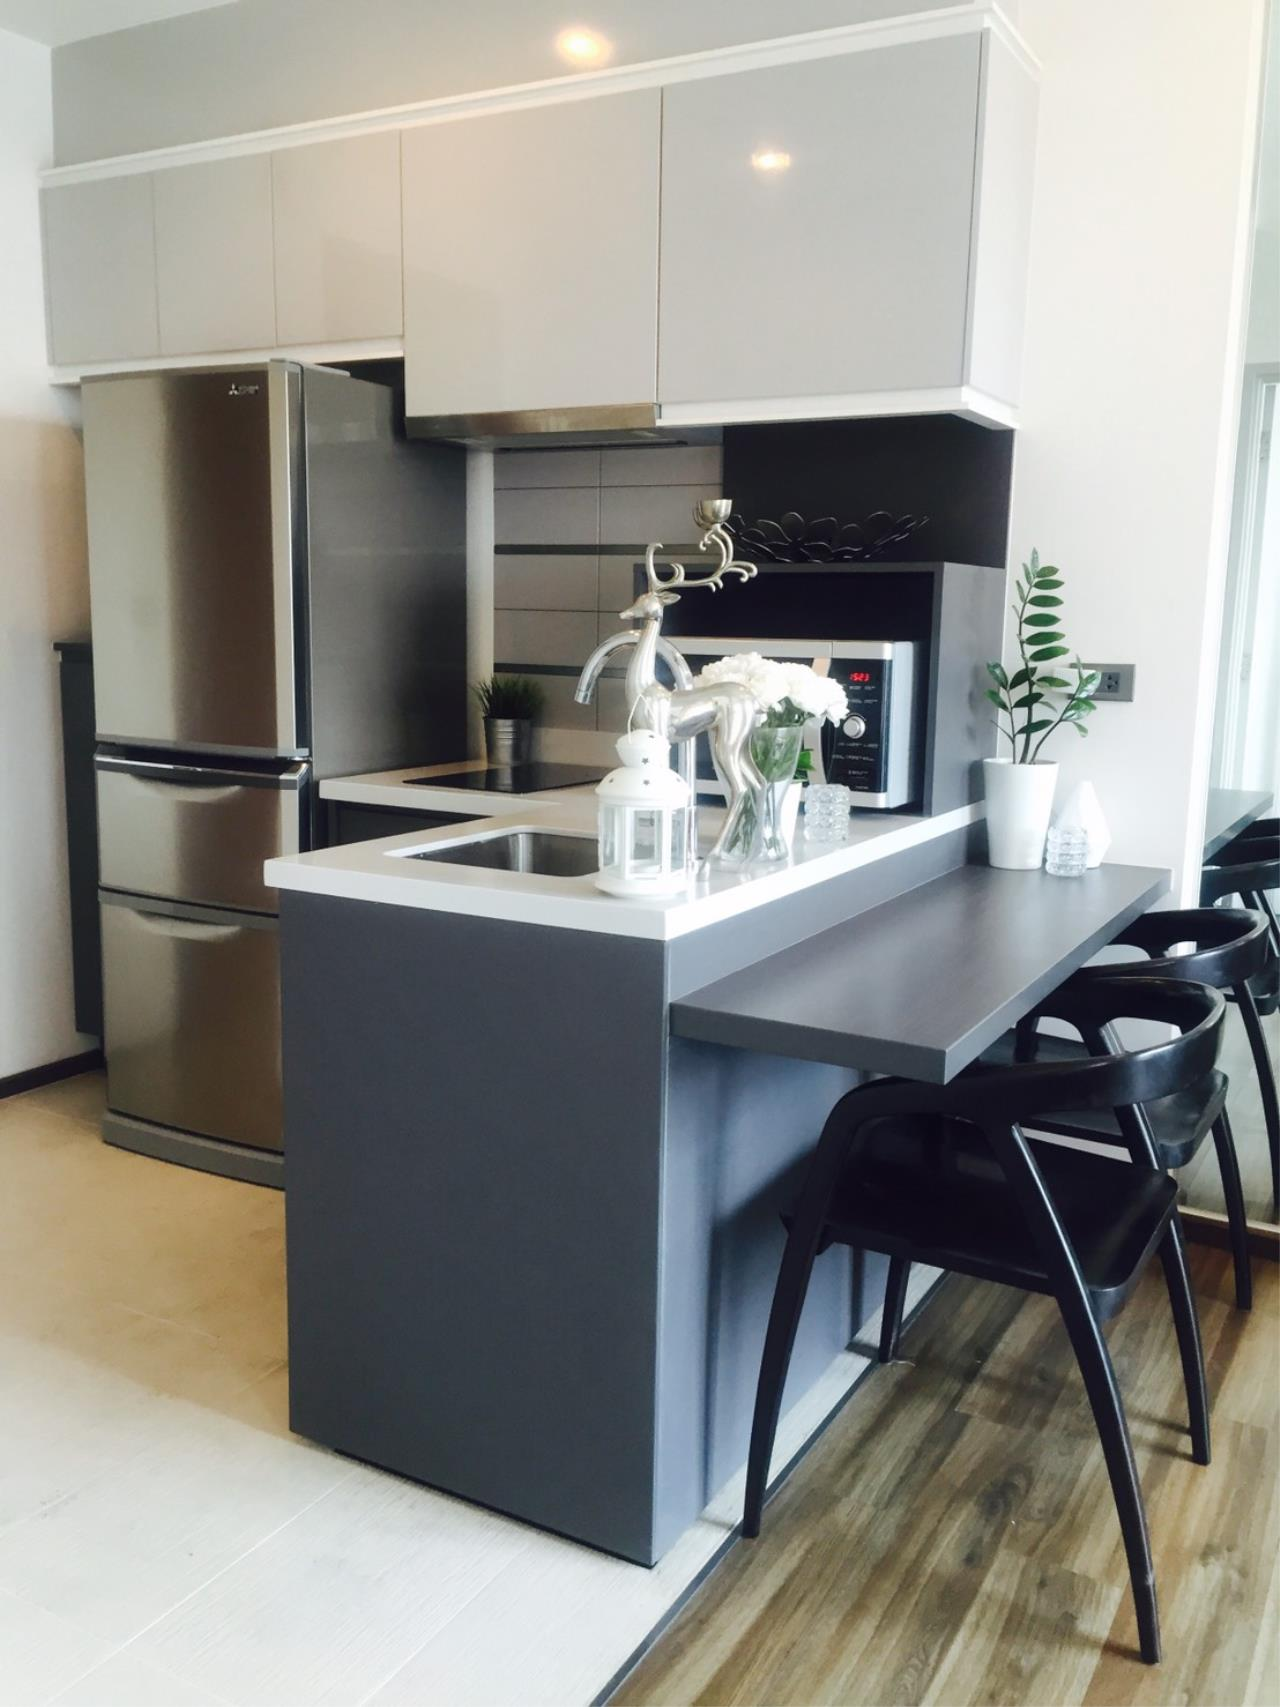 RE/MAX Properties Agency's Never Rented Before WYNE Condo 3